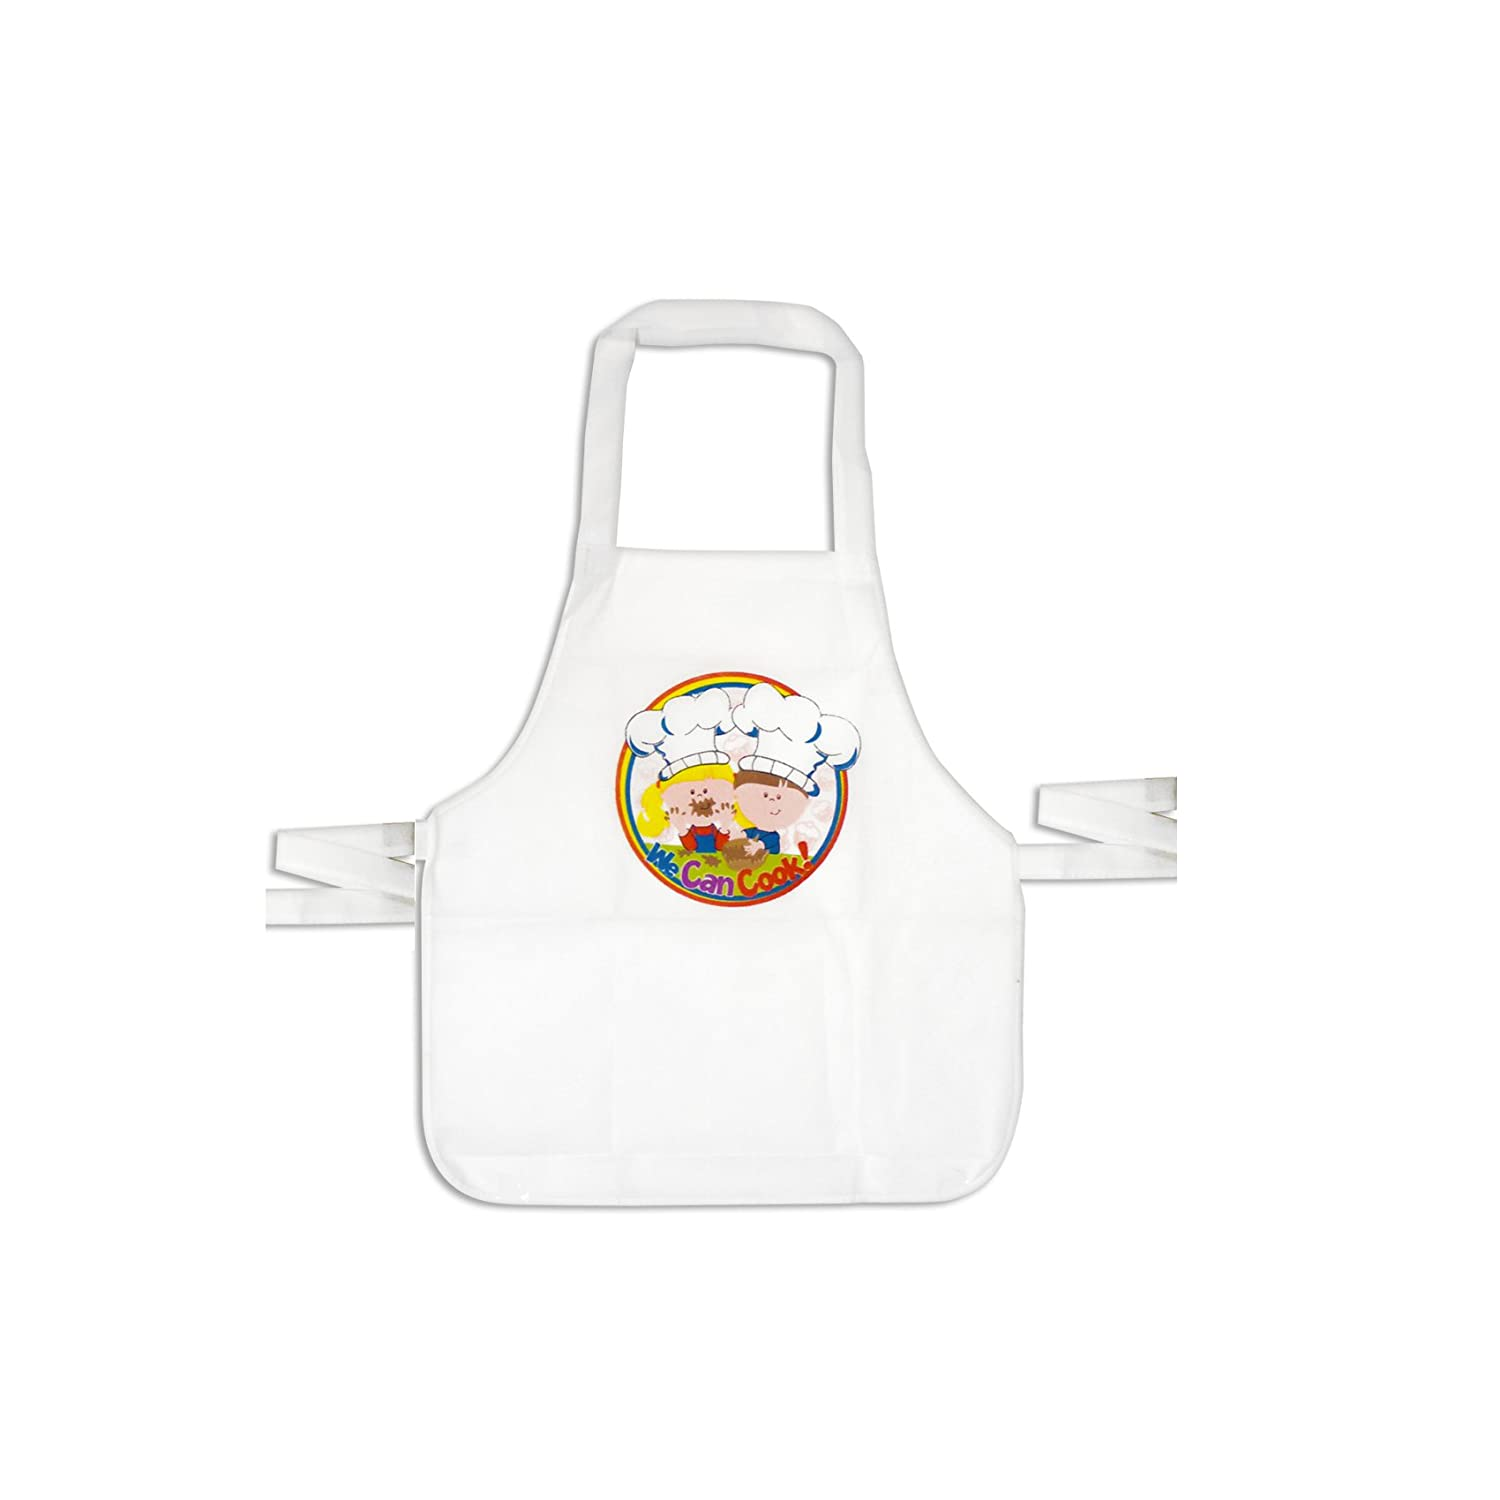 Masterchef apron (white) official merchandise -  We Can Cook Children S Kitchen Apron For Cooking Baking By